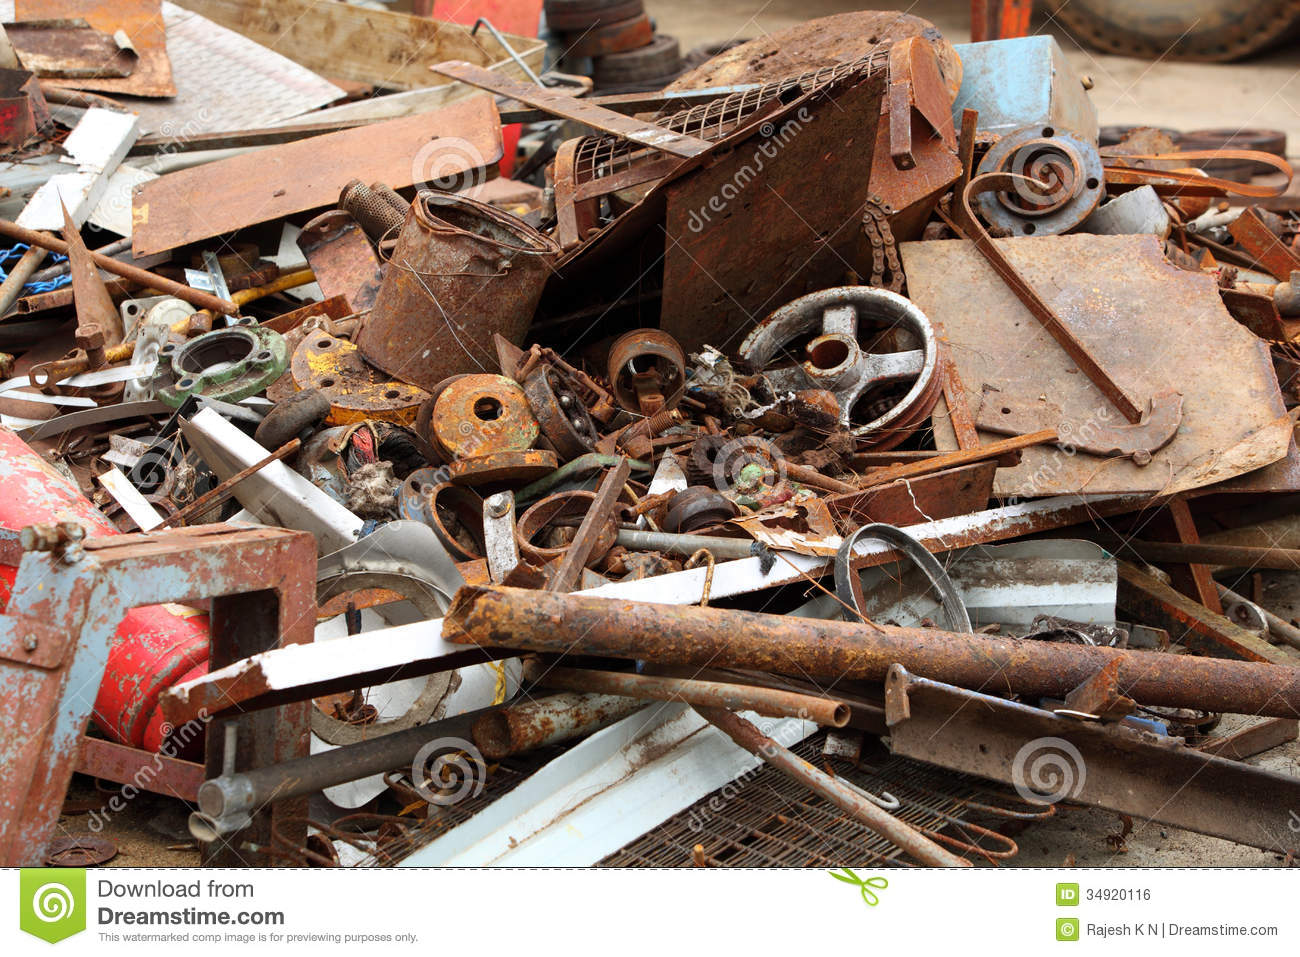 How to Begin a Scrap Metal Business